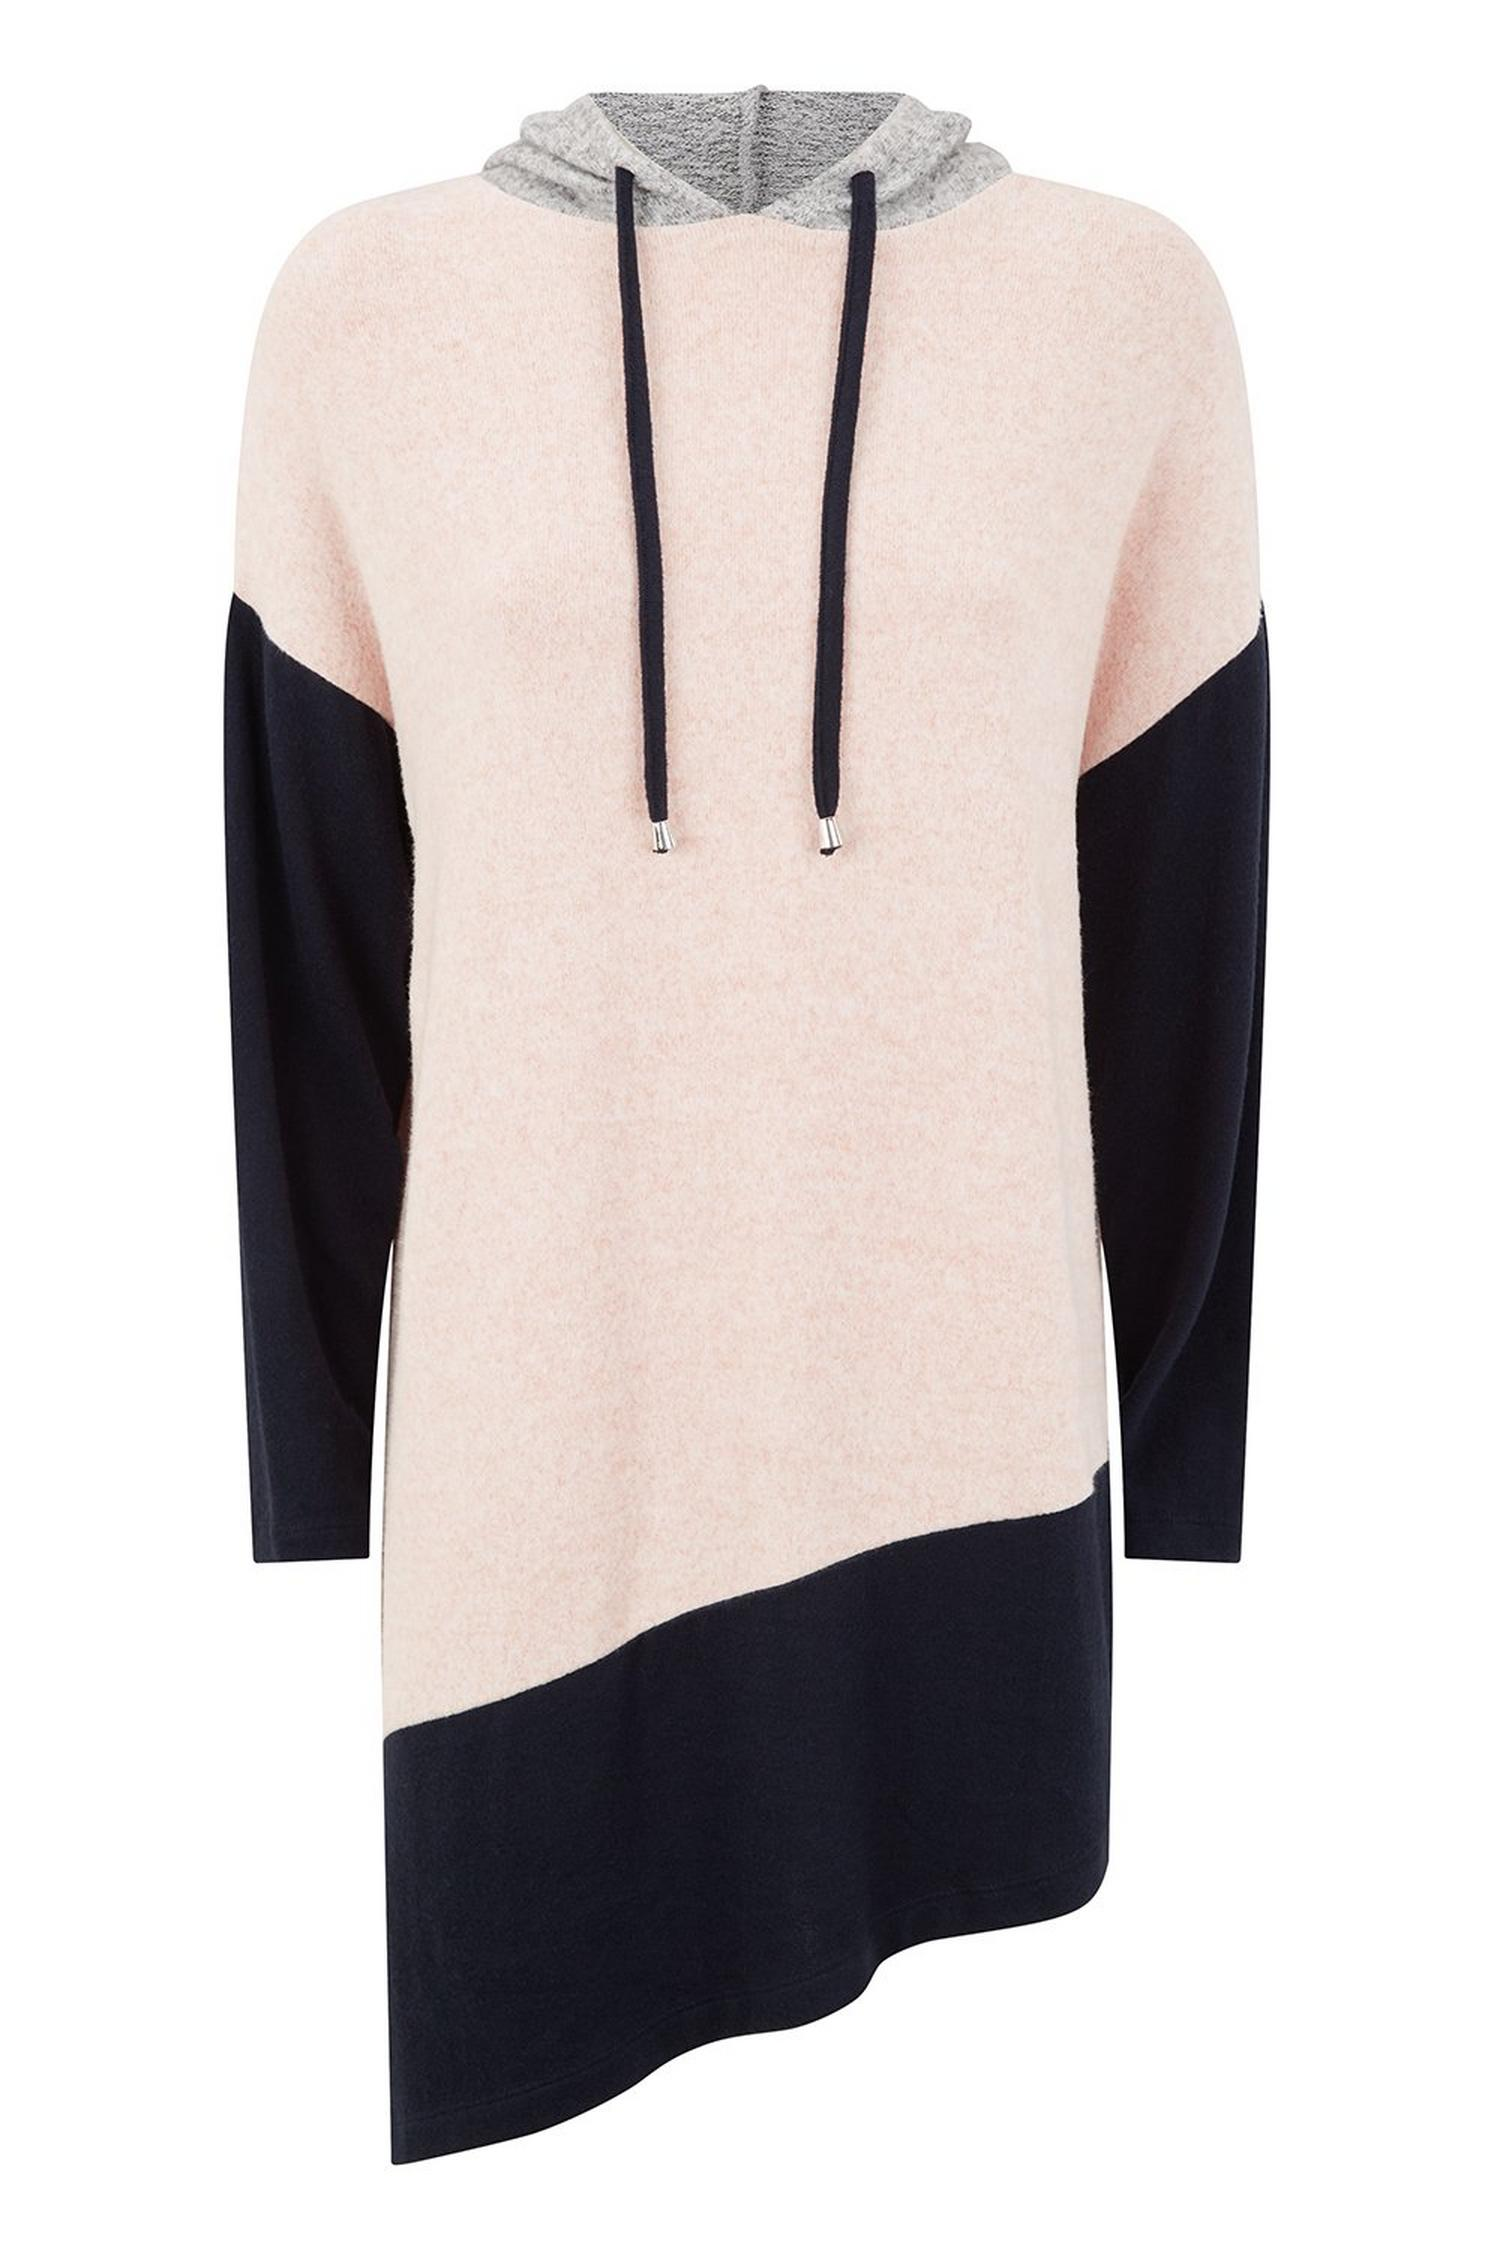 155 Pale Pink Colourblock Asymmetric Hoodie image number 2